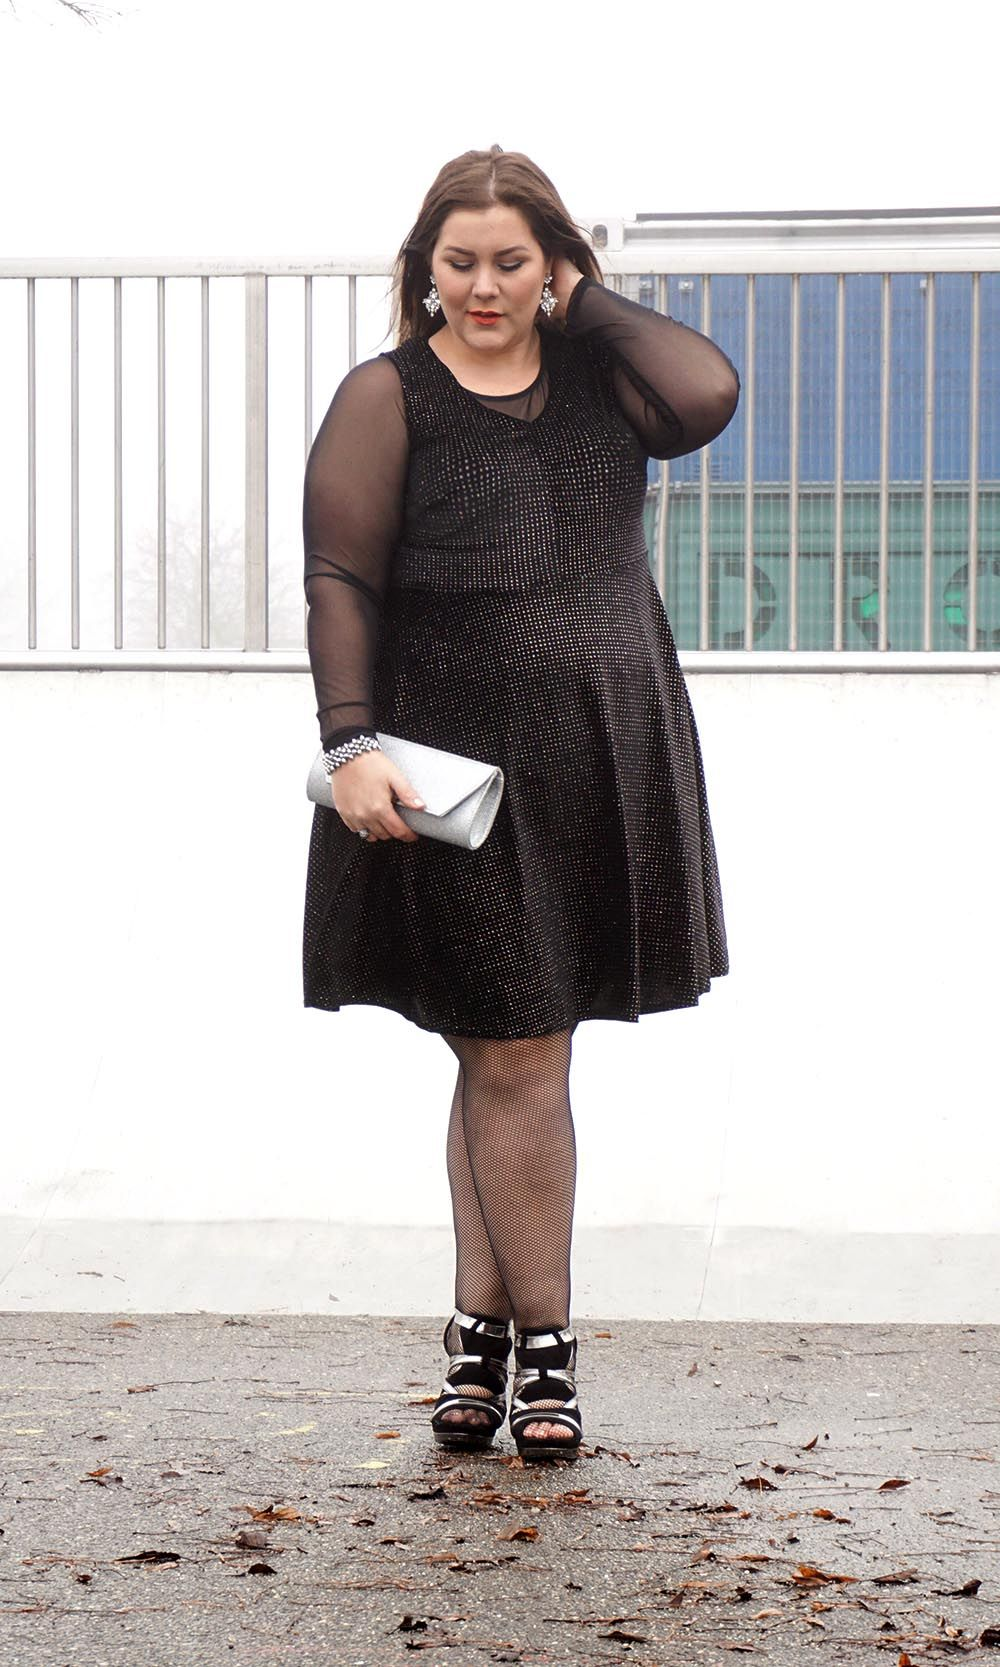 ed7a5c2380a5 This sparkling dress was my look for the holidays #black velvet #Blog  #blogger